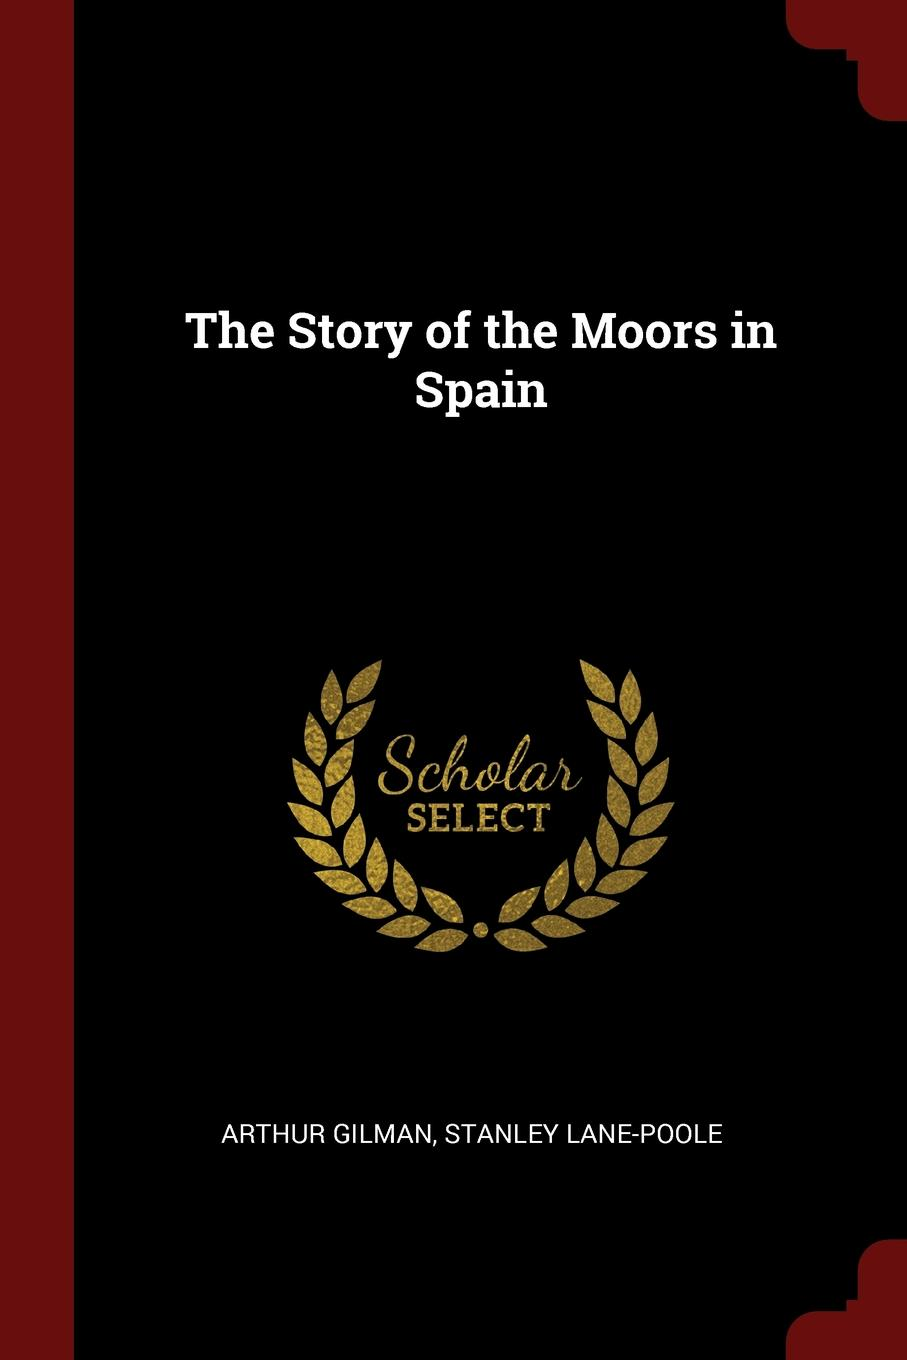 The Story of the Moors in Spain. Arthur Gilman, Stanley Lane-Poole